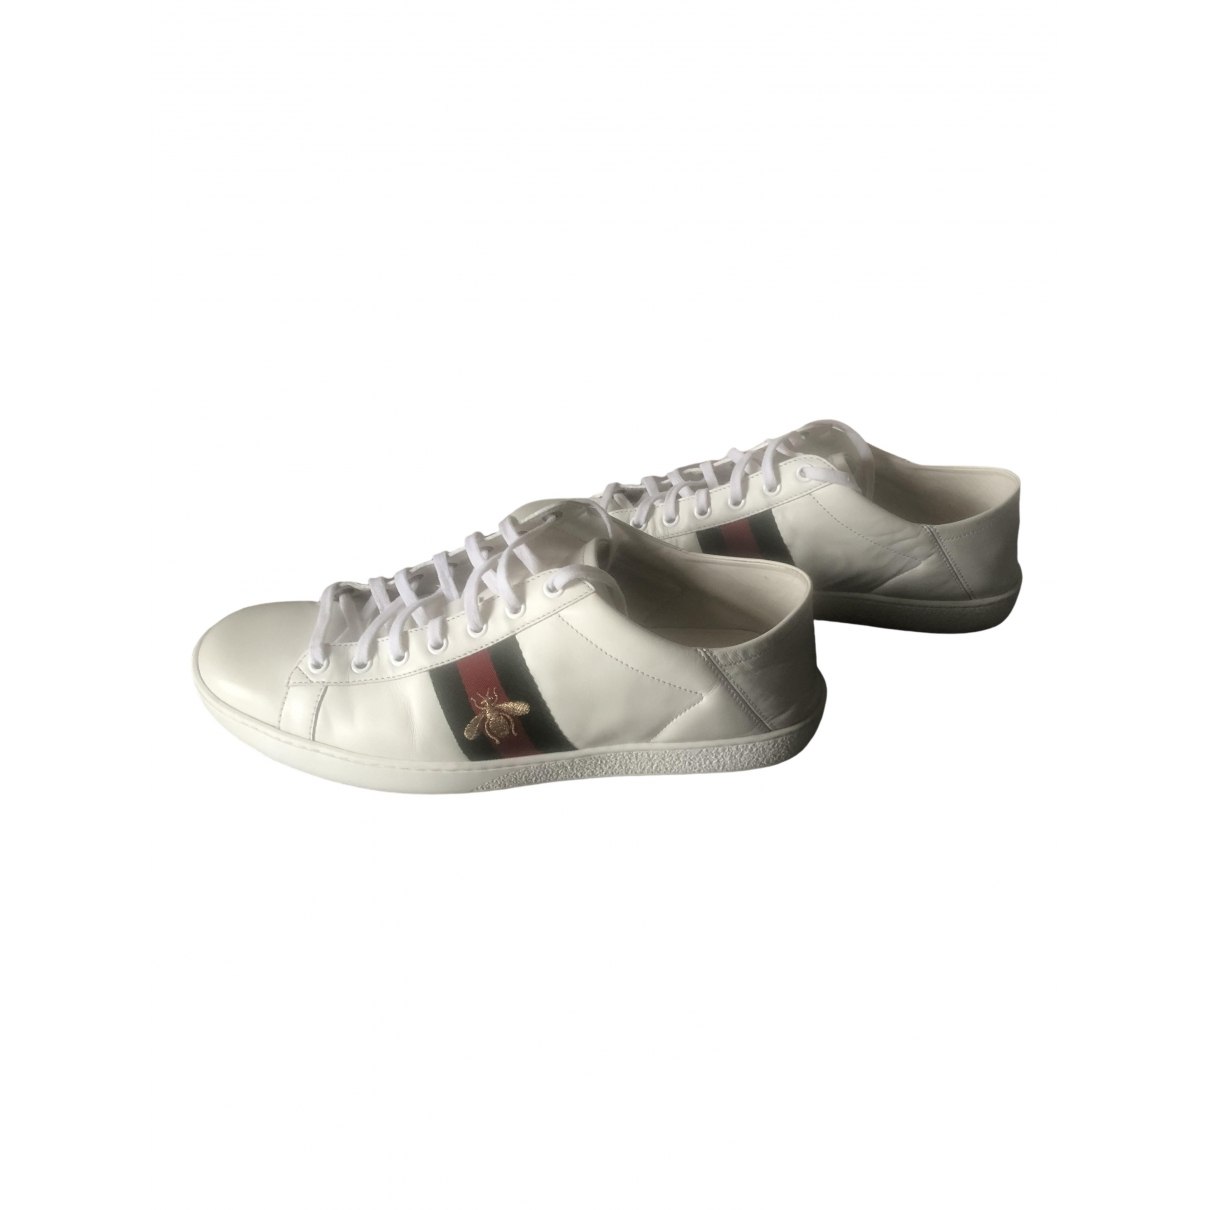 Gucci Ace White Leather Trainers for Men 41.5 EU